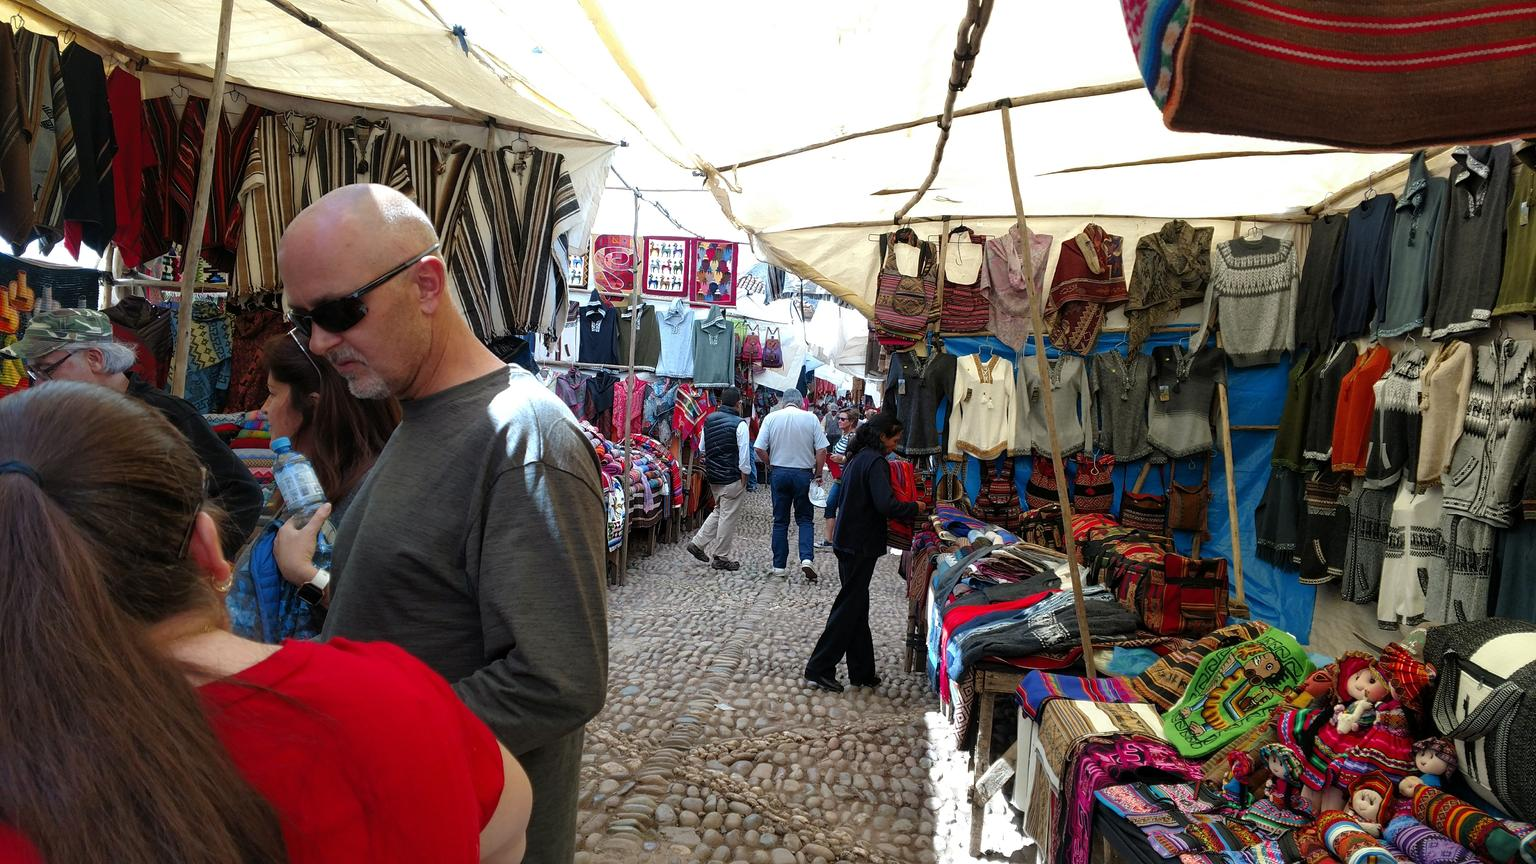 MORE PHOTOS, Sacred Valley of the Incas, Pisac, Awanacancha & Ollantaytambo Tour